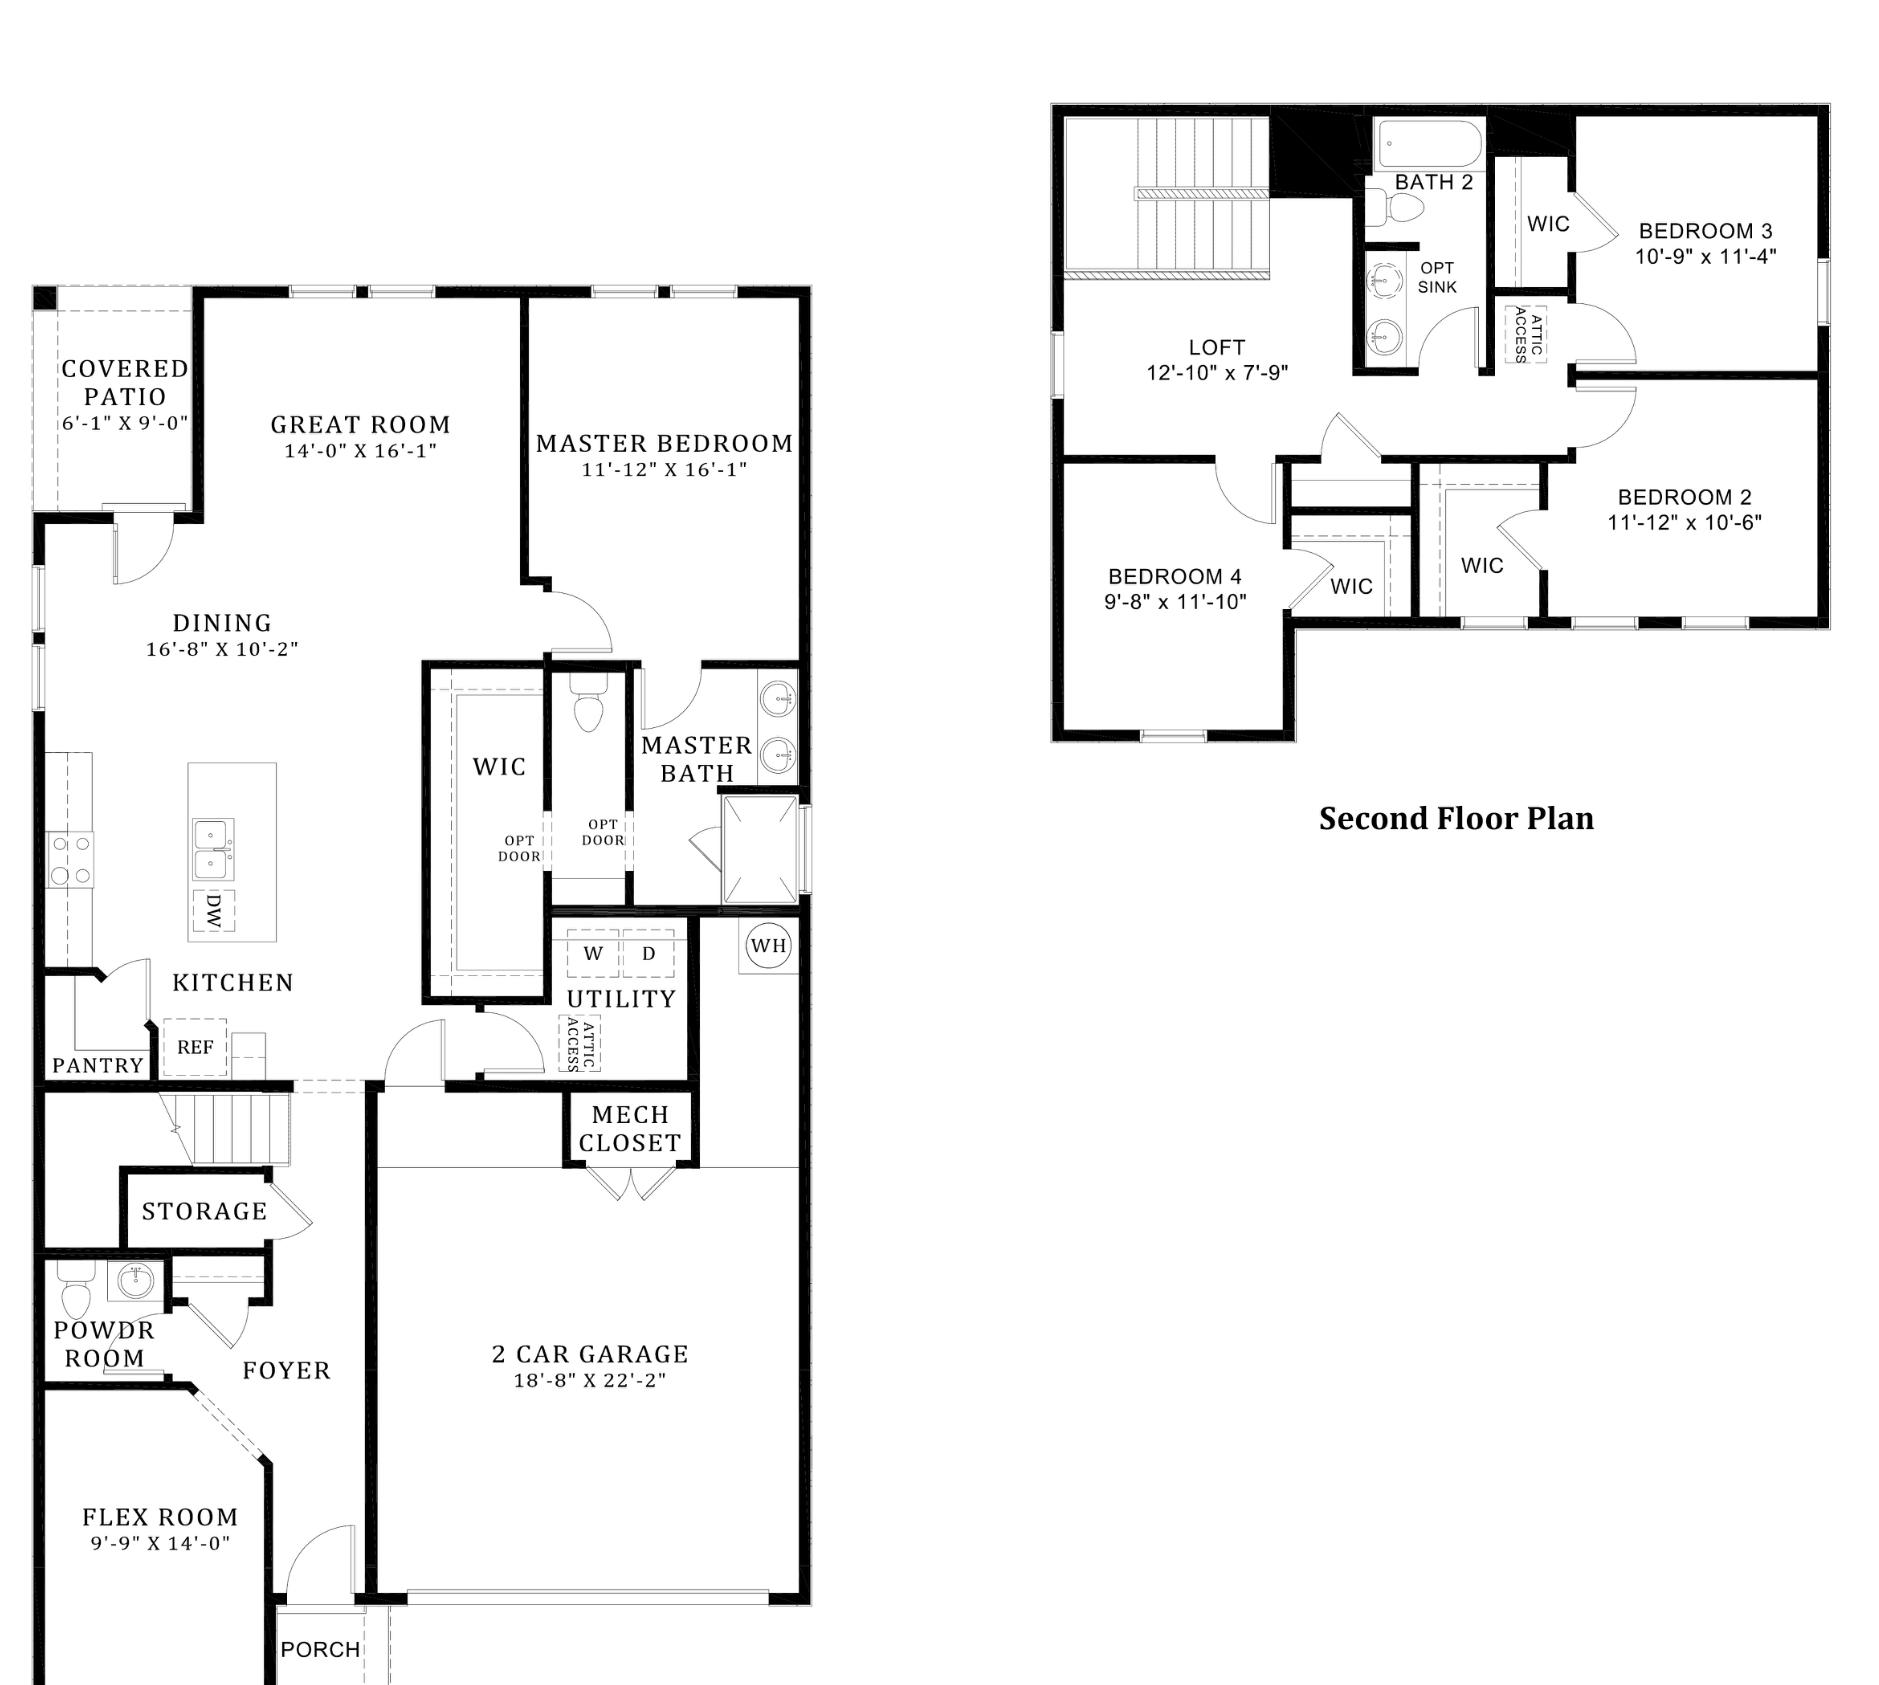 This is one of the brand new floorplans we are offering at Las Terrazas, its called the Maxwell and it pretty much maxes out everything. Open concept floor plan with granite kitchen counters, tile in wet areas, Owners suite on first floor and that is just the stuff you can see. The Maxwell also features energy efficient construction that will blow away almost any resale home on the market. The Las Terrazas community offers a great quality of life with a mature and growing trail system, numerous parks and picnic areas throughout the community. All this and a location that can't be beat. We are close to I-25 for quick commutes and also close to all of the new shopping venues near the freeway. The Maxwell at Las Terrazas proves that you can have it all